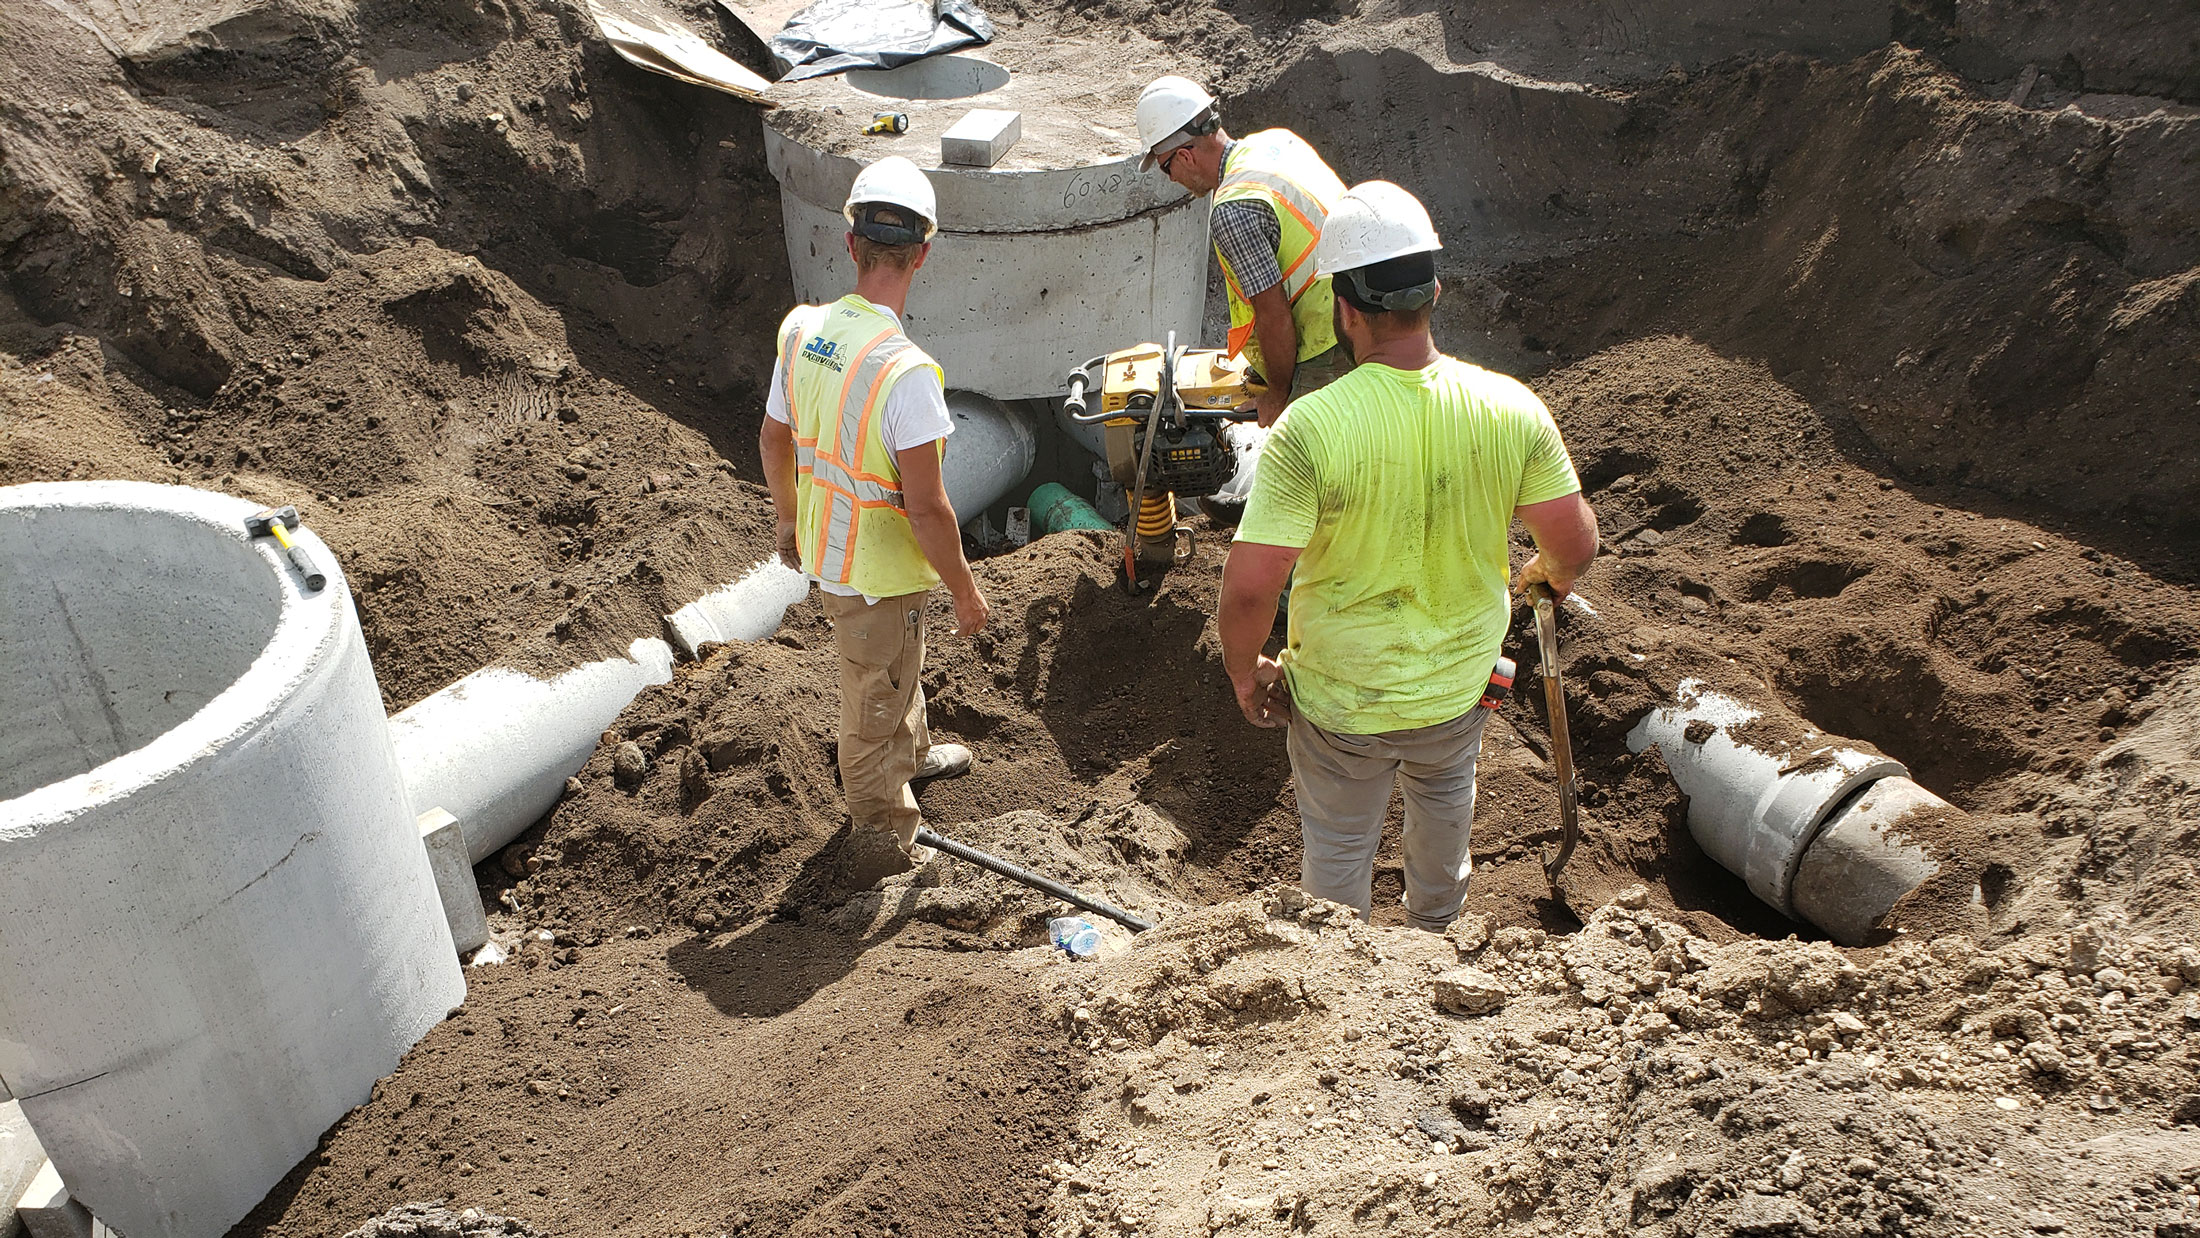 Concrete structures for storm sewer.